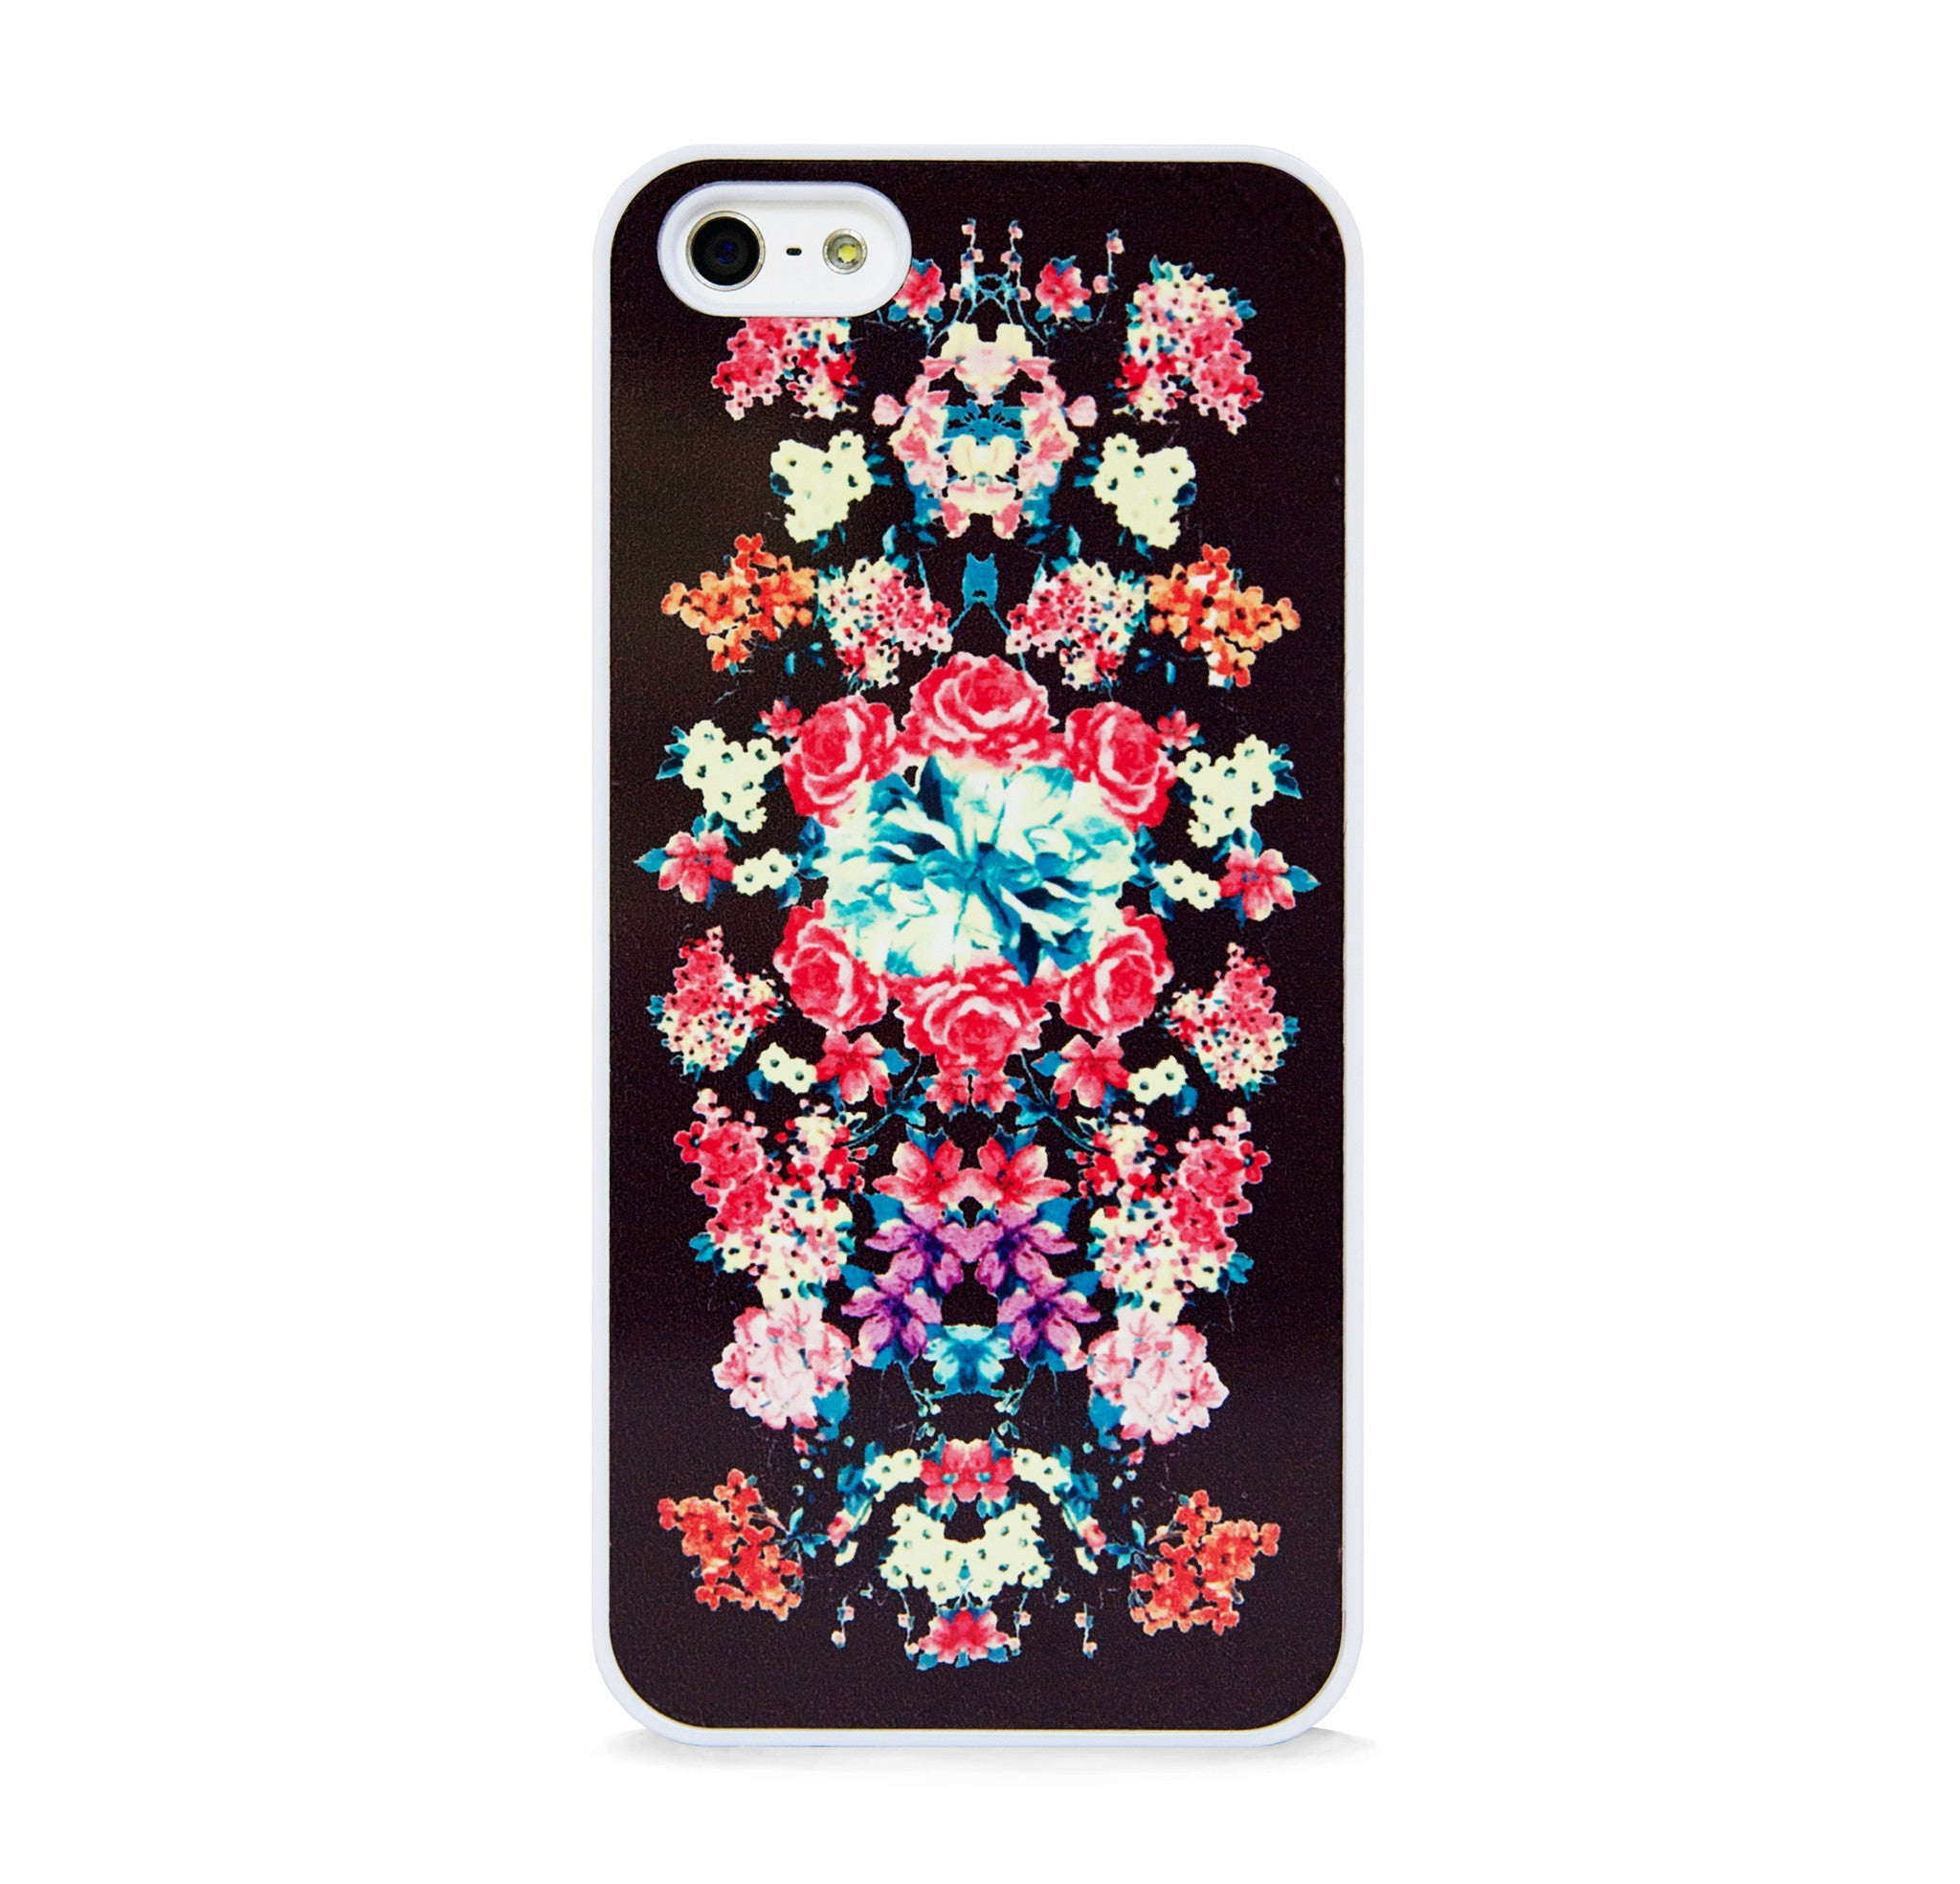 FLORAL PRINT BLACK FOR IPHONE 5/5S, IPHONE SE